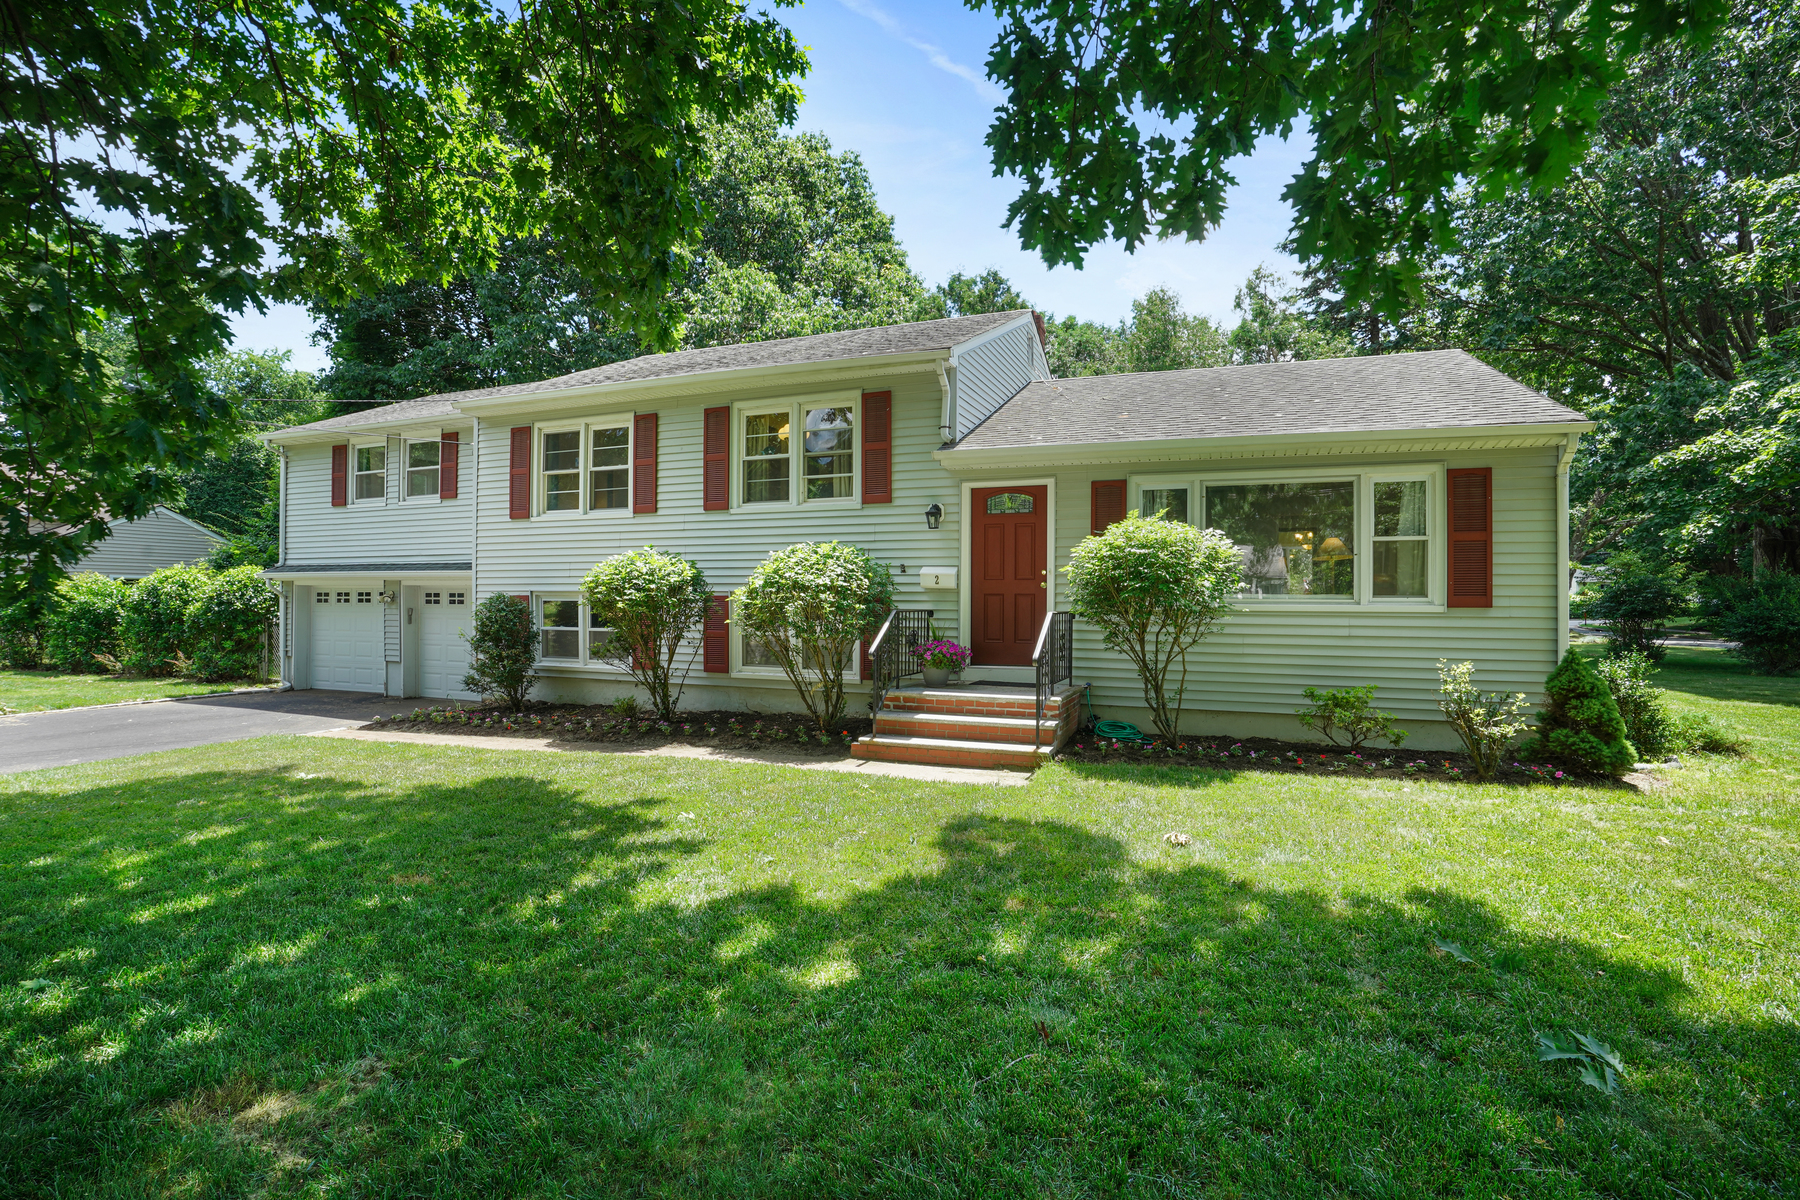 Single Family Homes for Active at Lovely Home 2 Knapp Avenue Florham Park, New Jersey 07932 United States